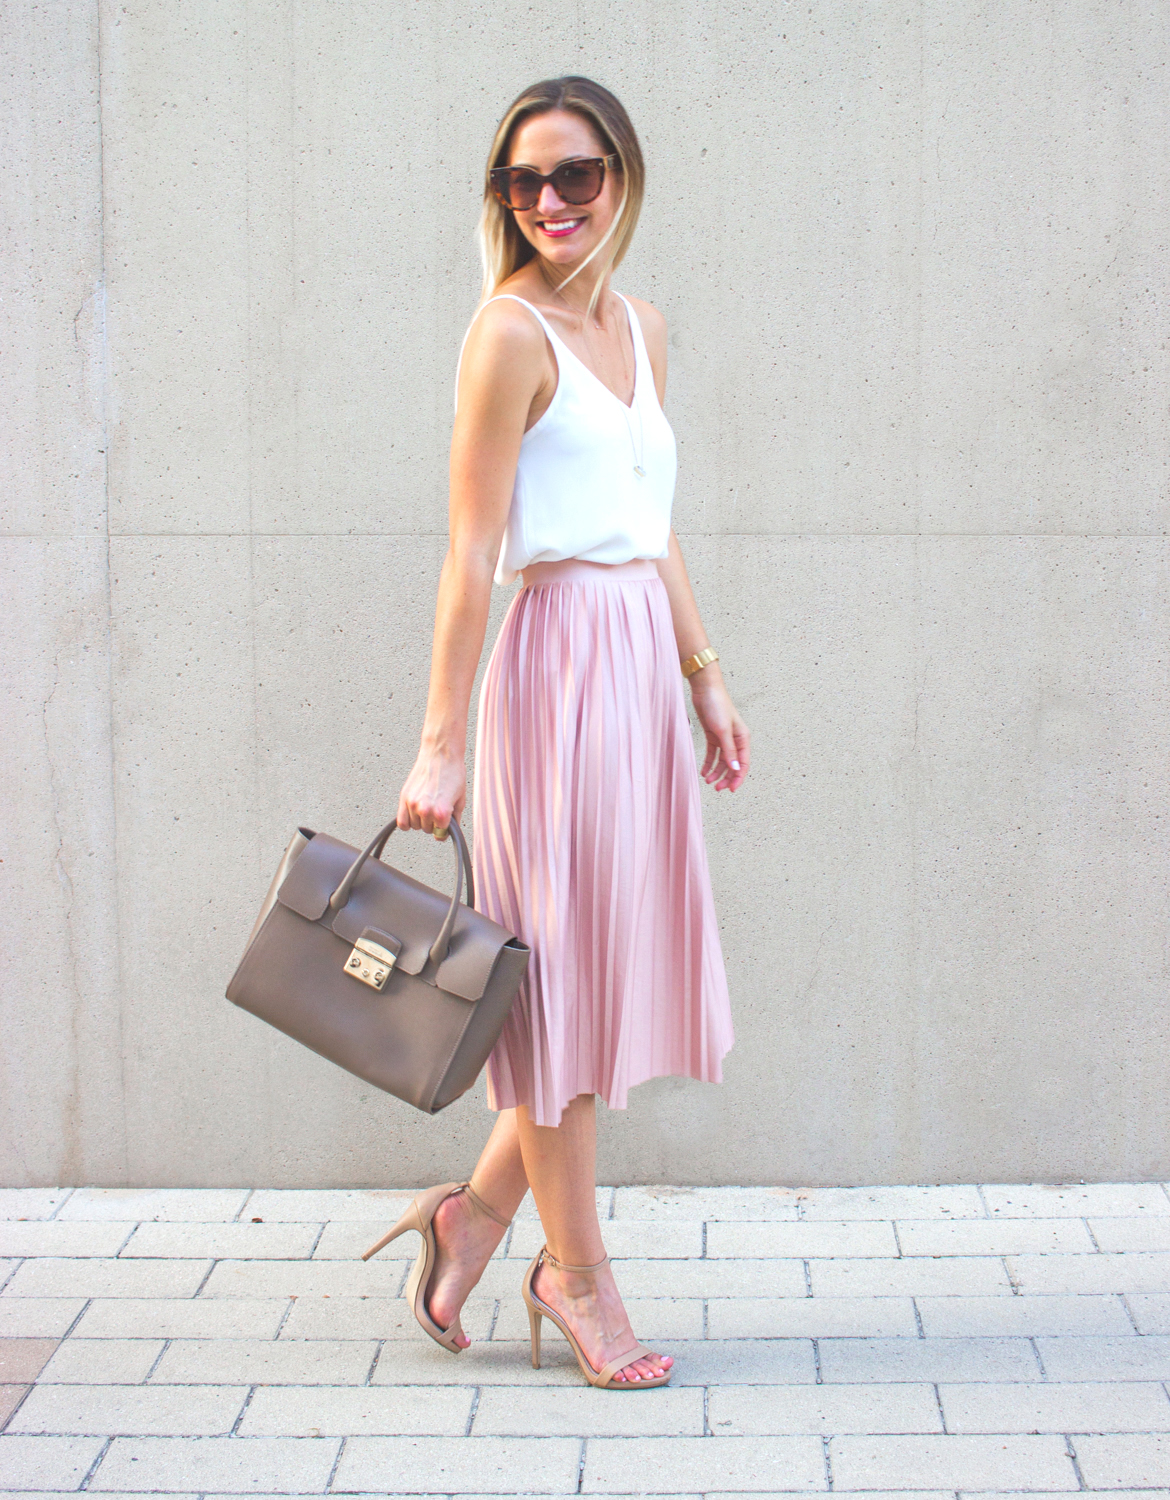 livvyland-blog-olivia-watson-topshop-blush-pink-pleated-high-waist-skirt-white-top-girly-feminine-outfit-2